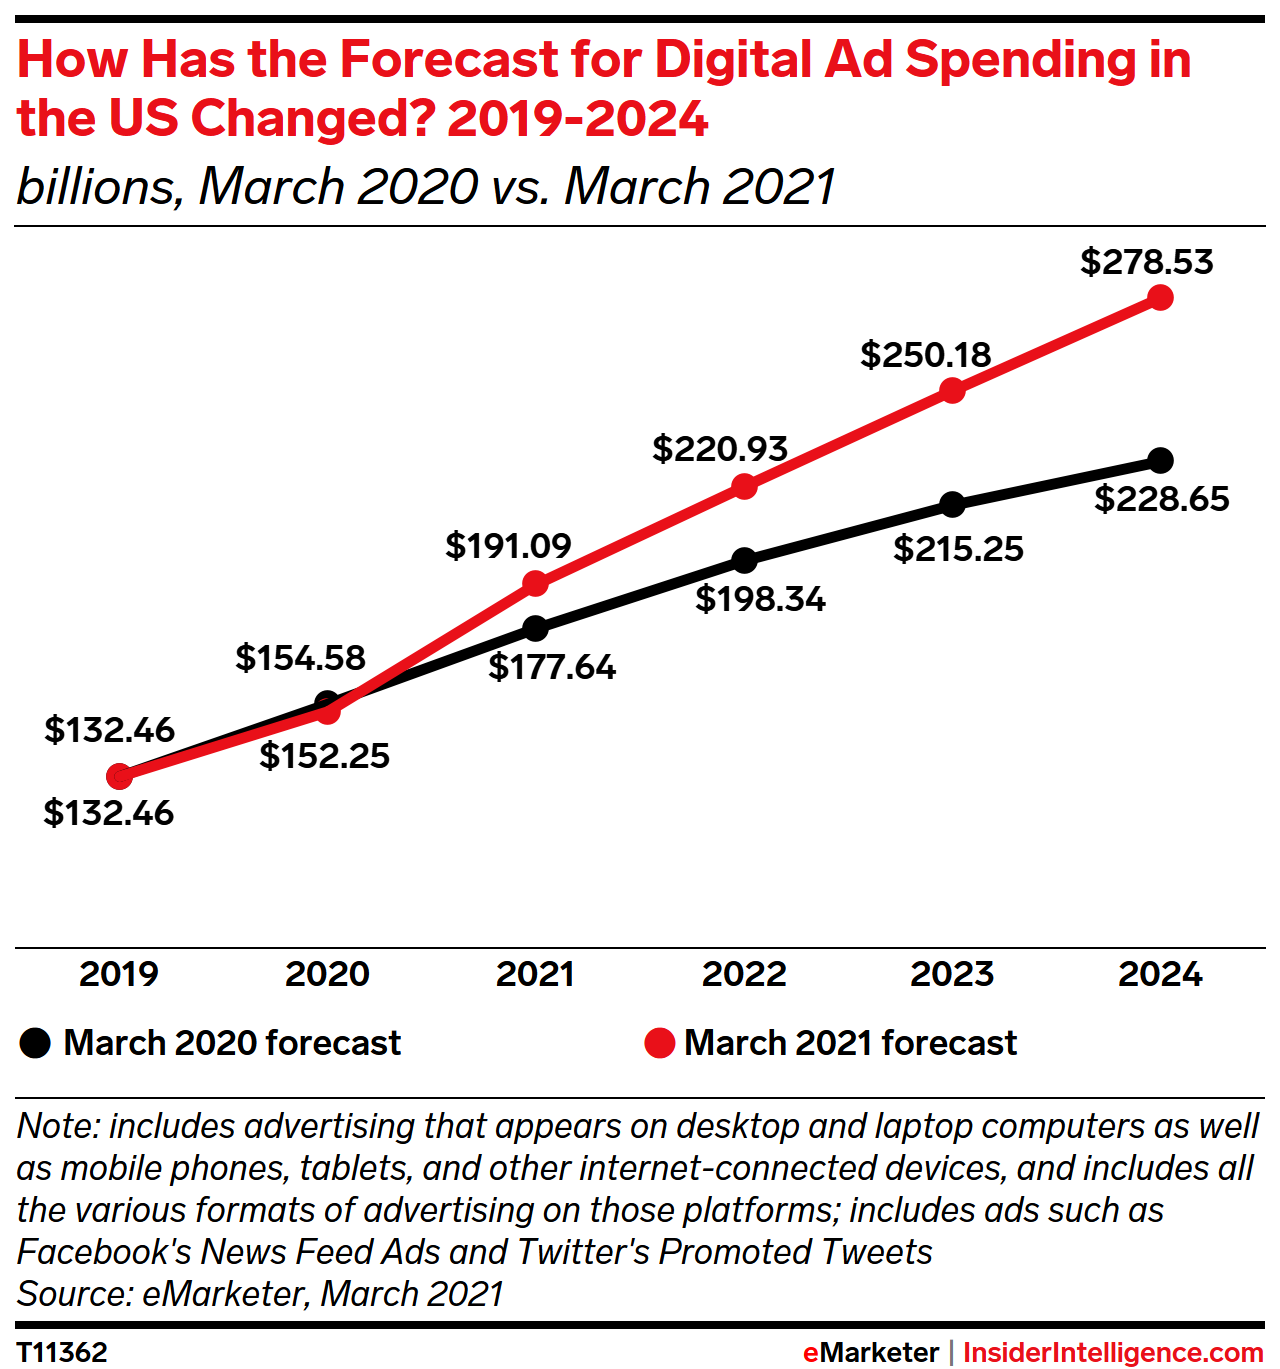 How Has the Forecast for Digital Ad Spending in the US Changed? 2019-2024 (billions)